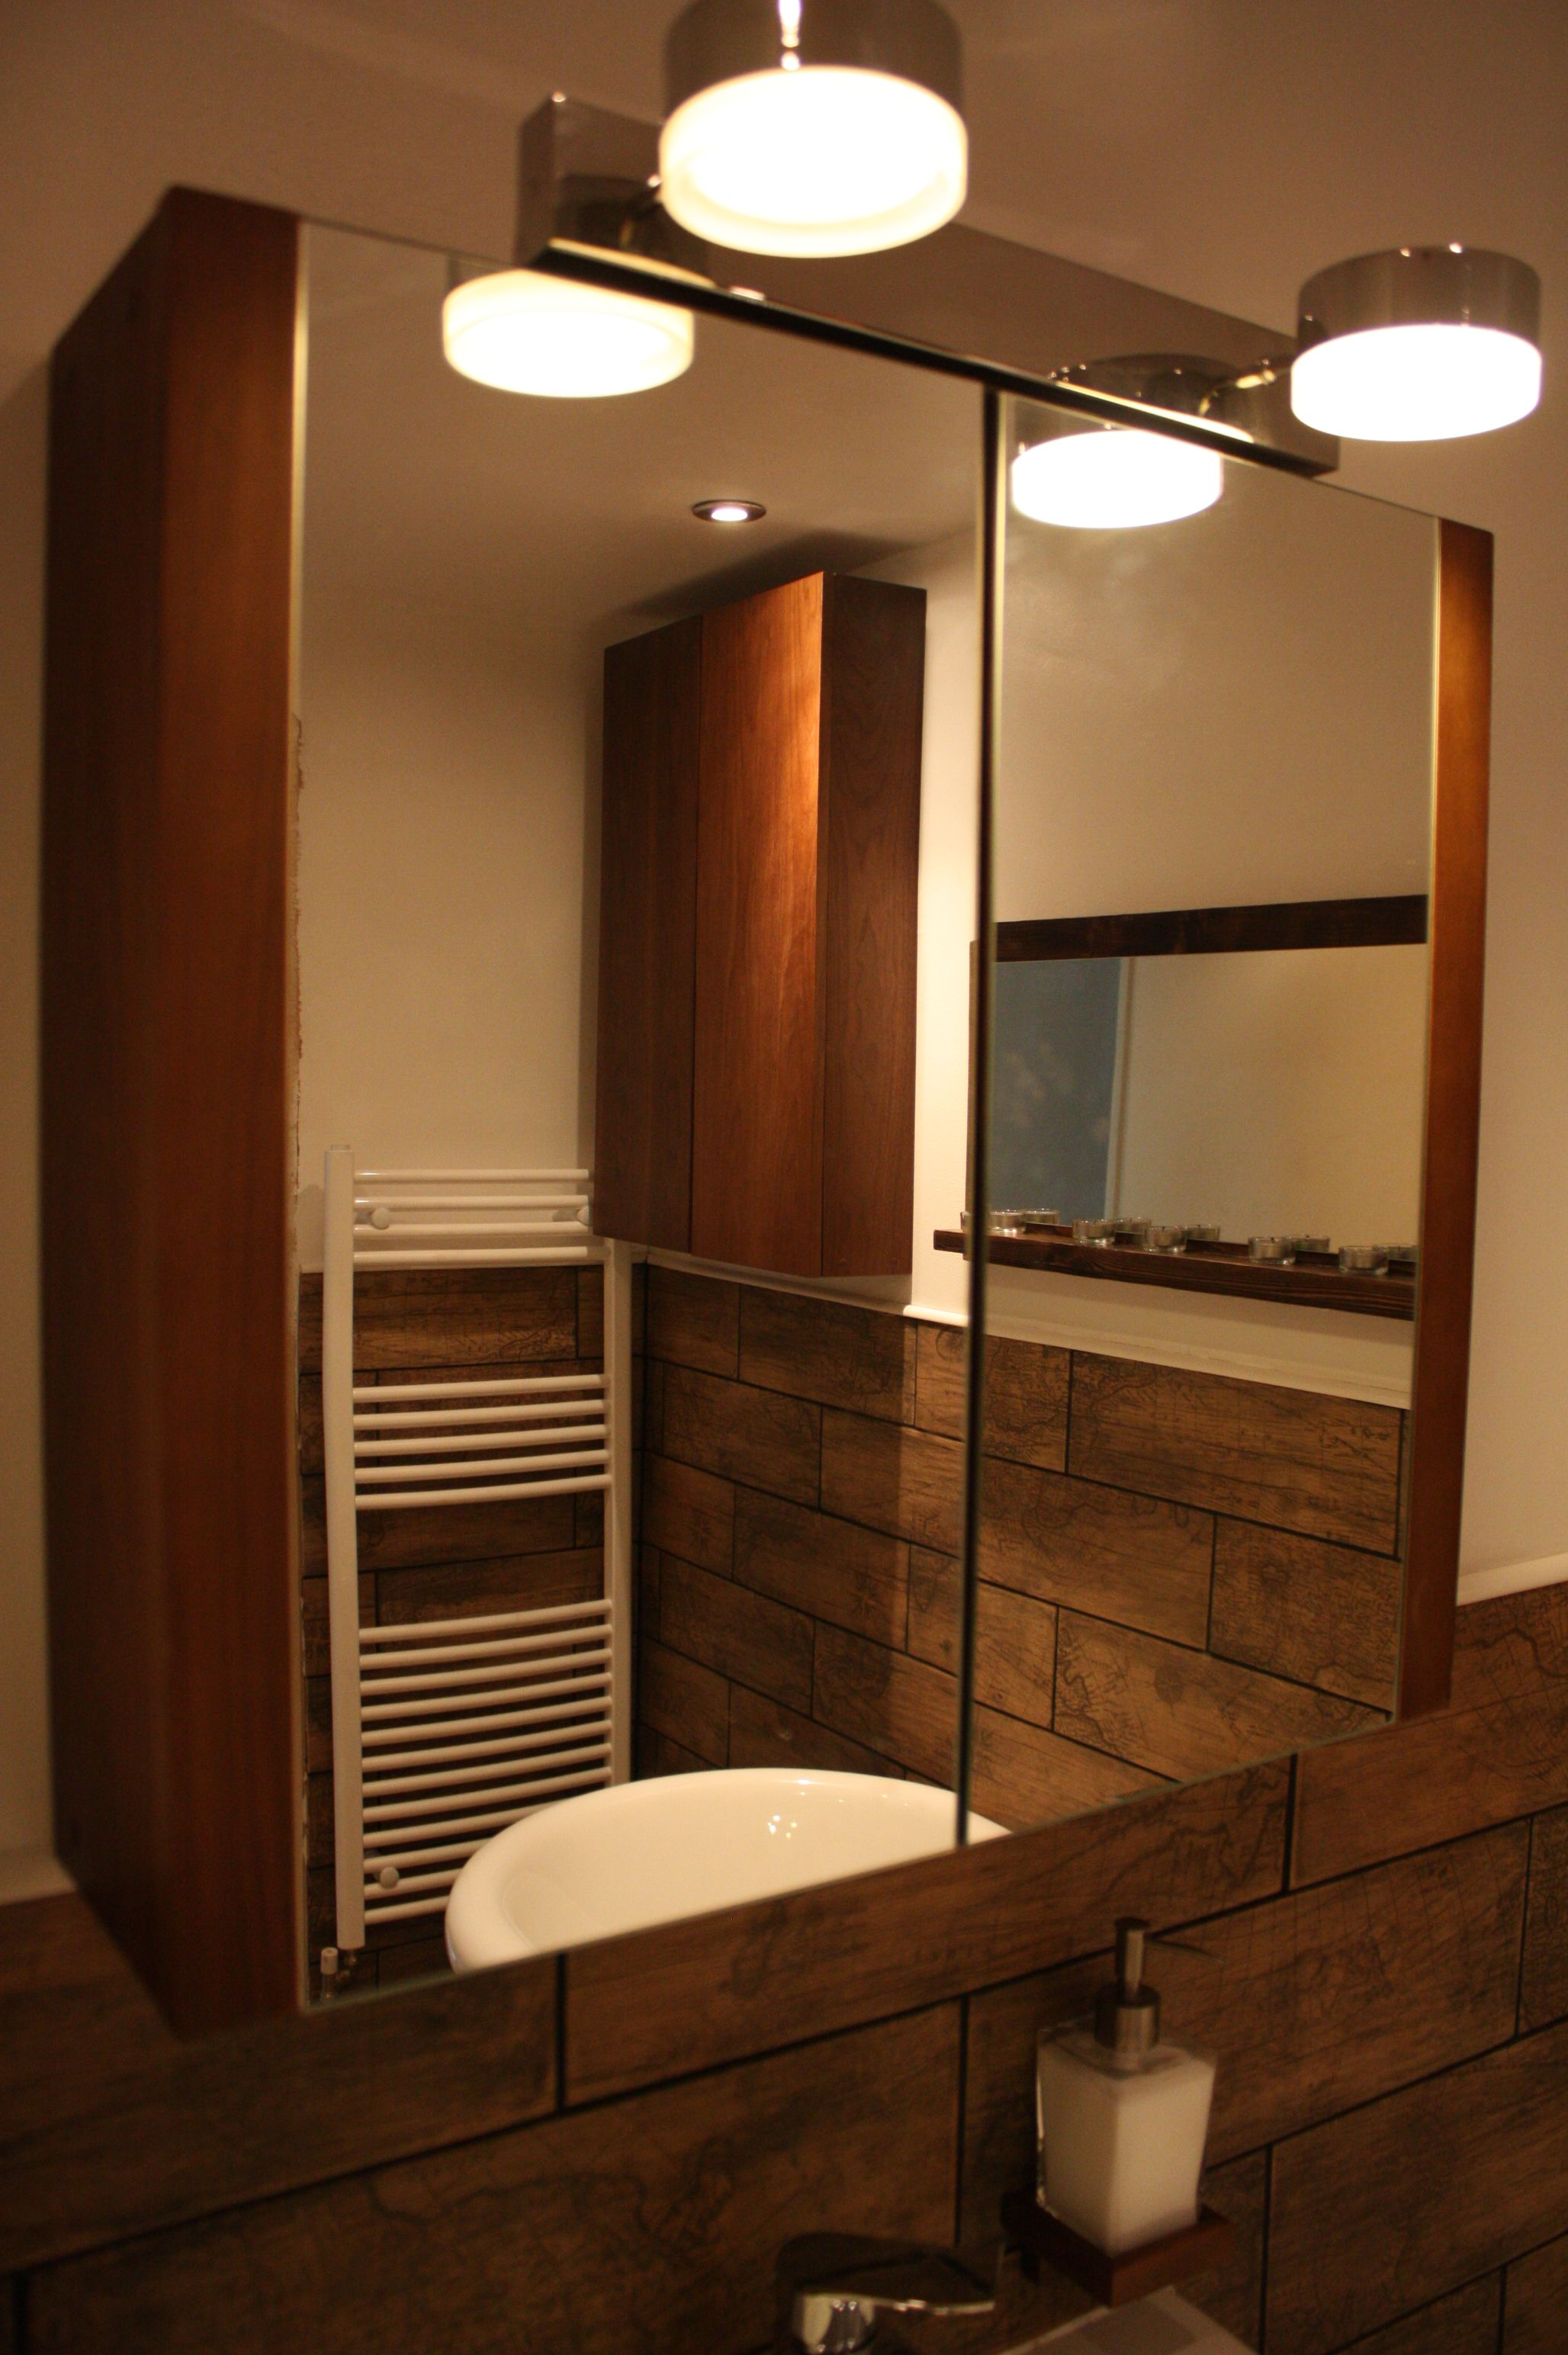 Walnut Bathroom Mirror From B Amp Q In The Sale For 40 Mirrored On The Outside And The Inside The Light Wa Wood Spa Walnut Wood Furniture Wood Effect Tiles